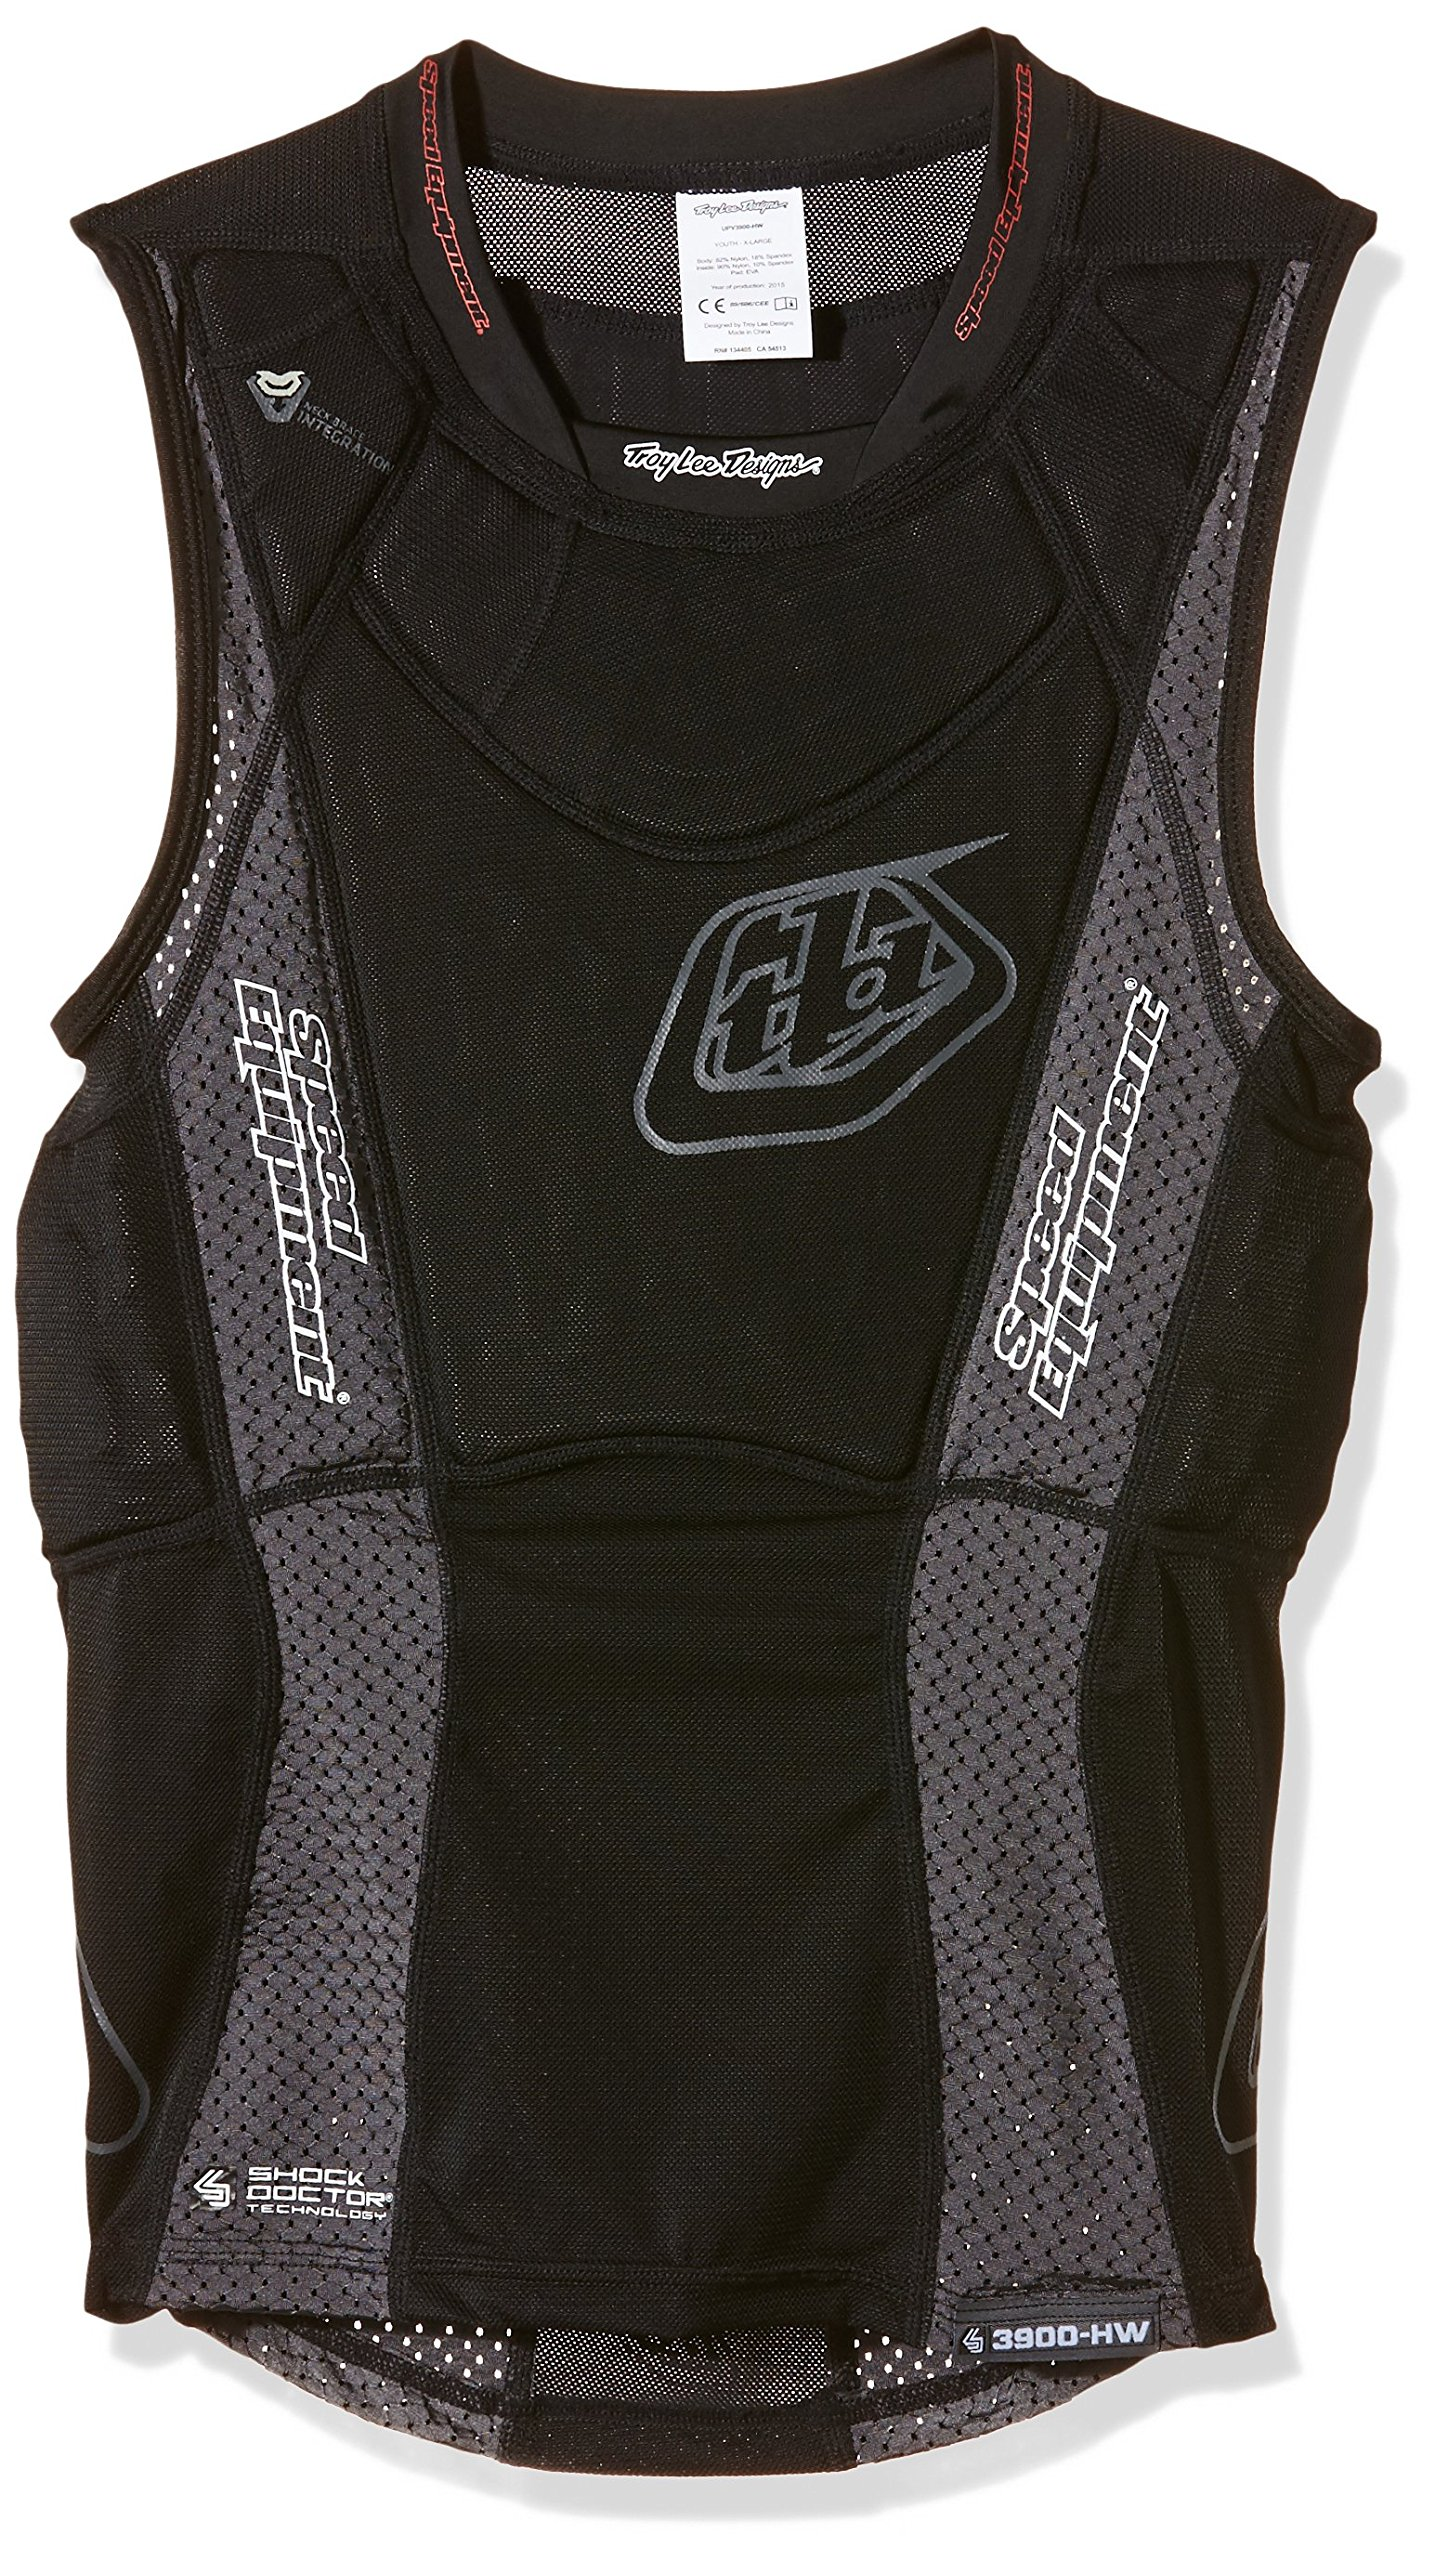 Troy Lee Designs Youth 3900 Ultra Protective Vest-YXL